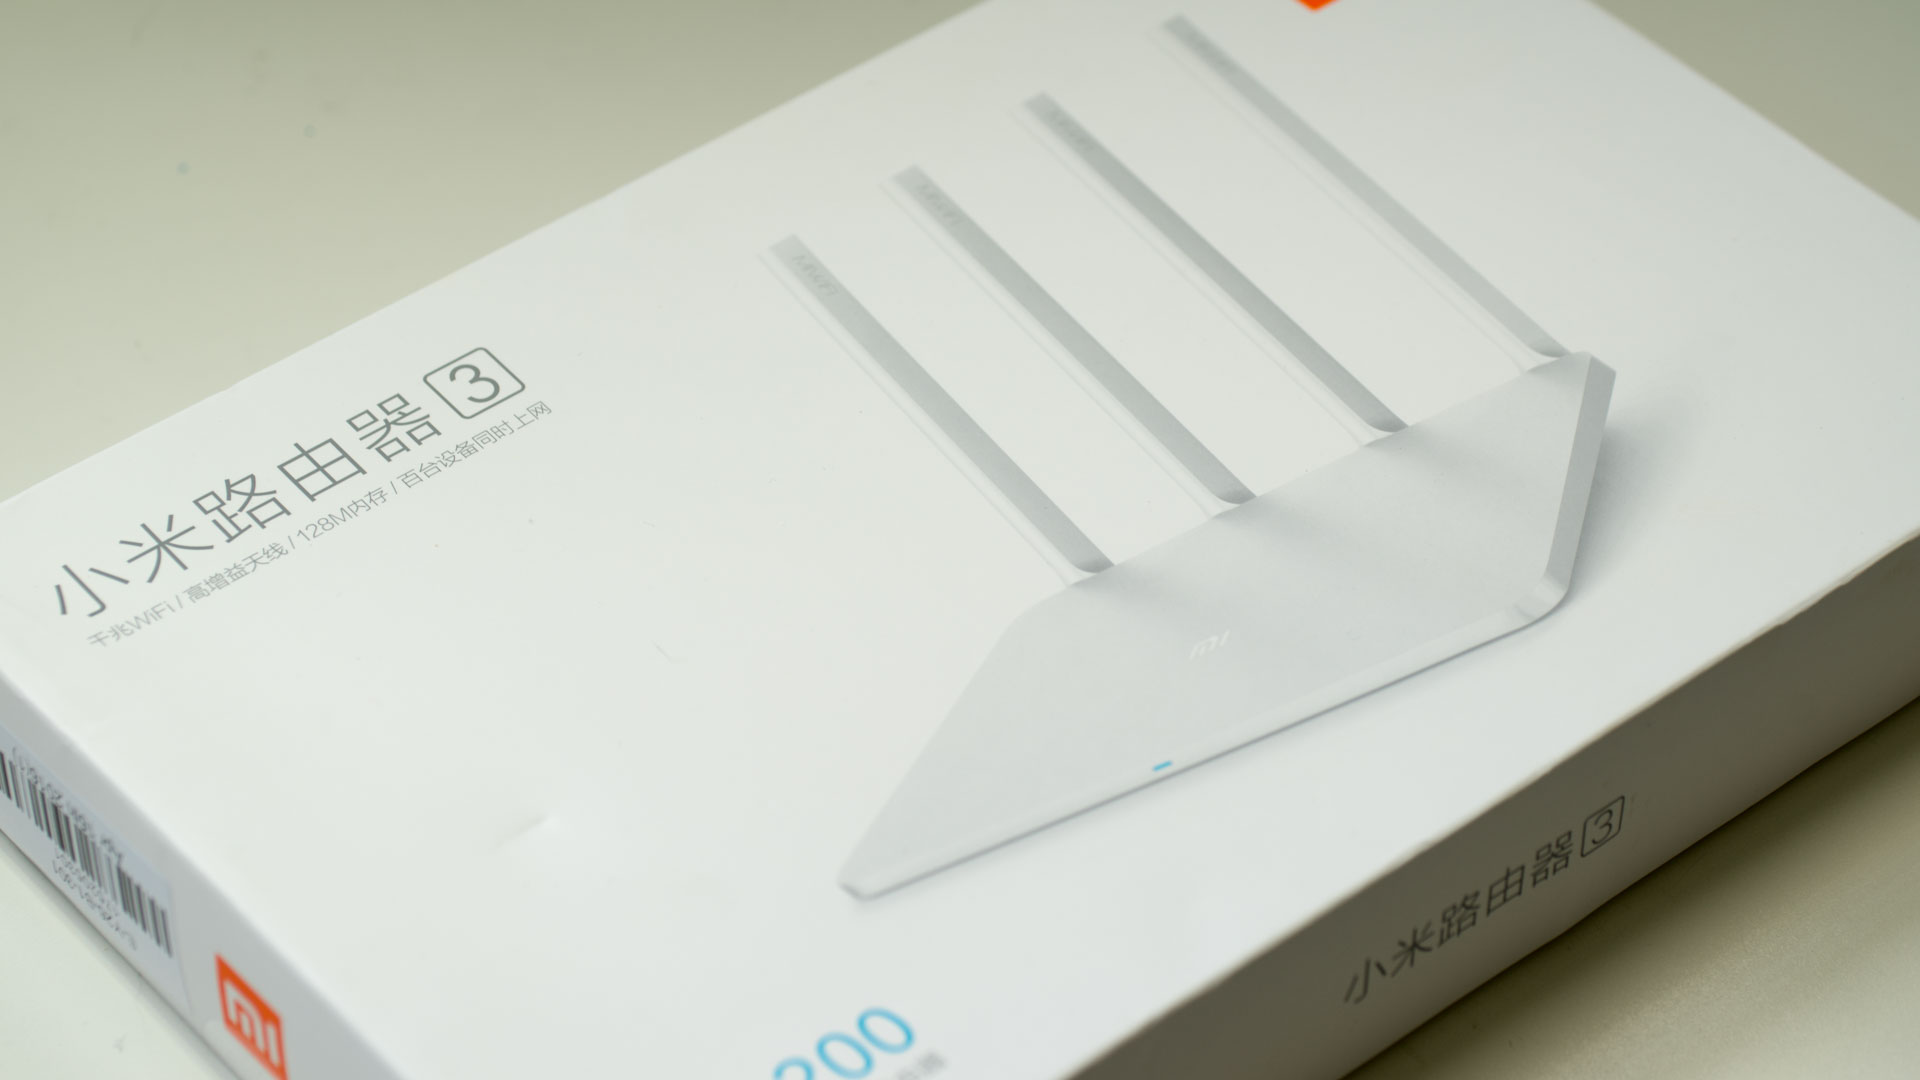 xiaomi mi wifi router 3 review first Windows